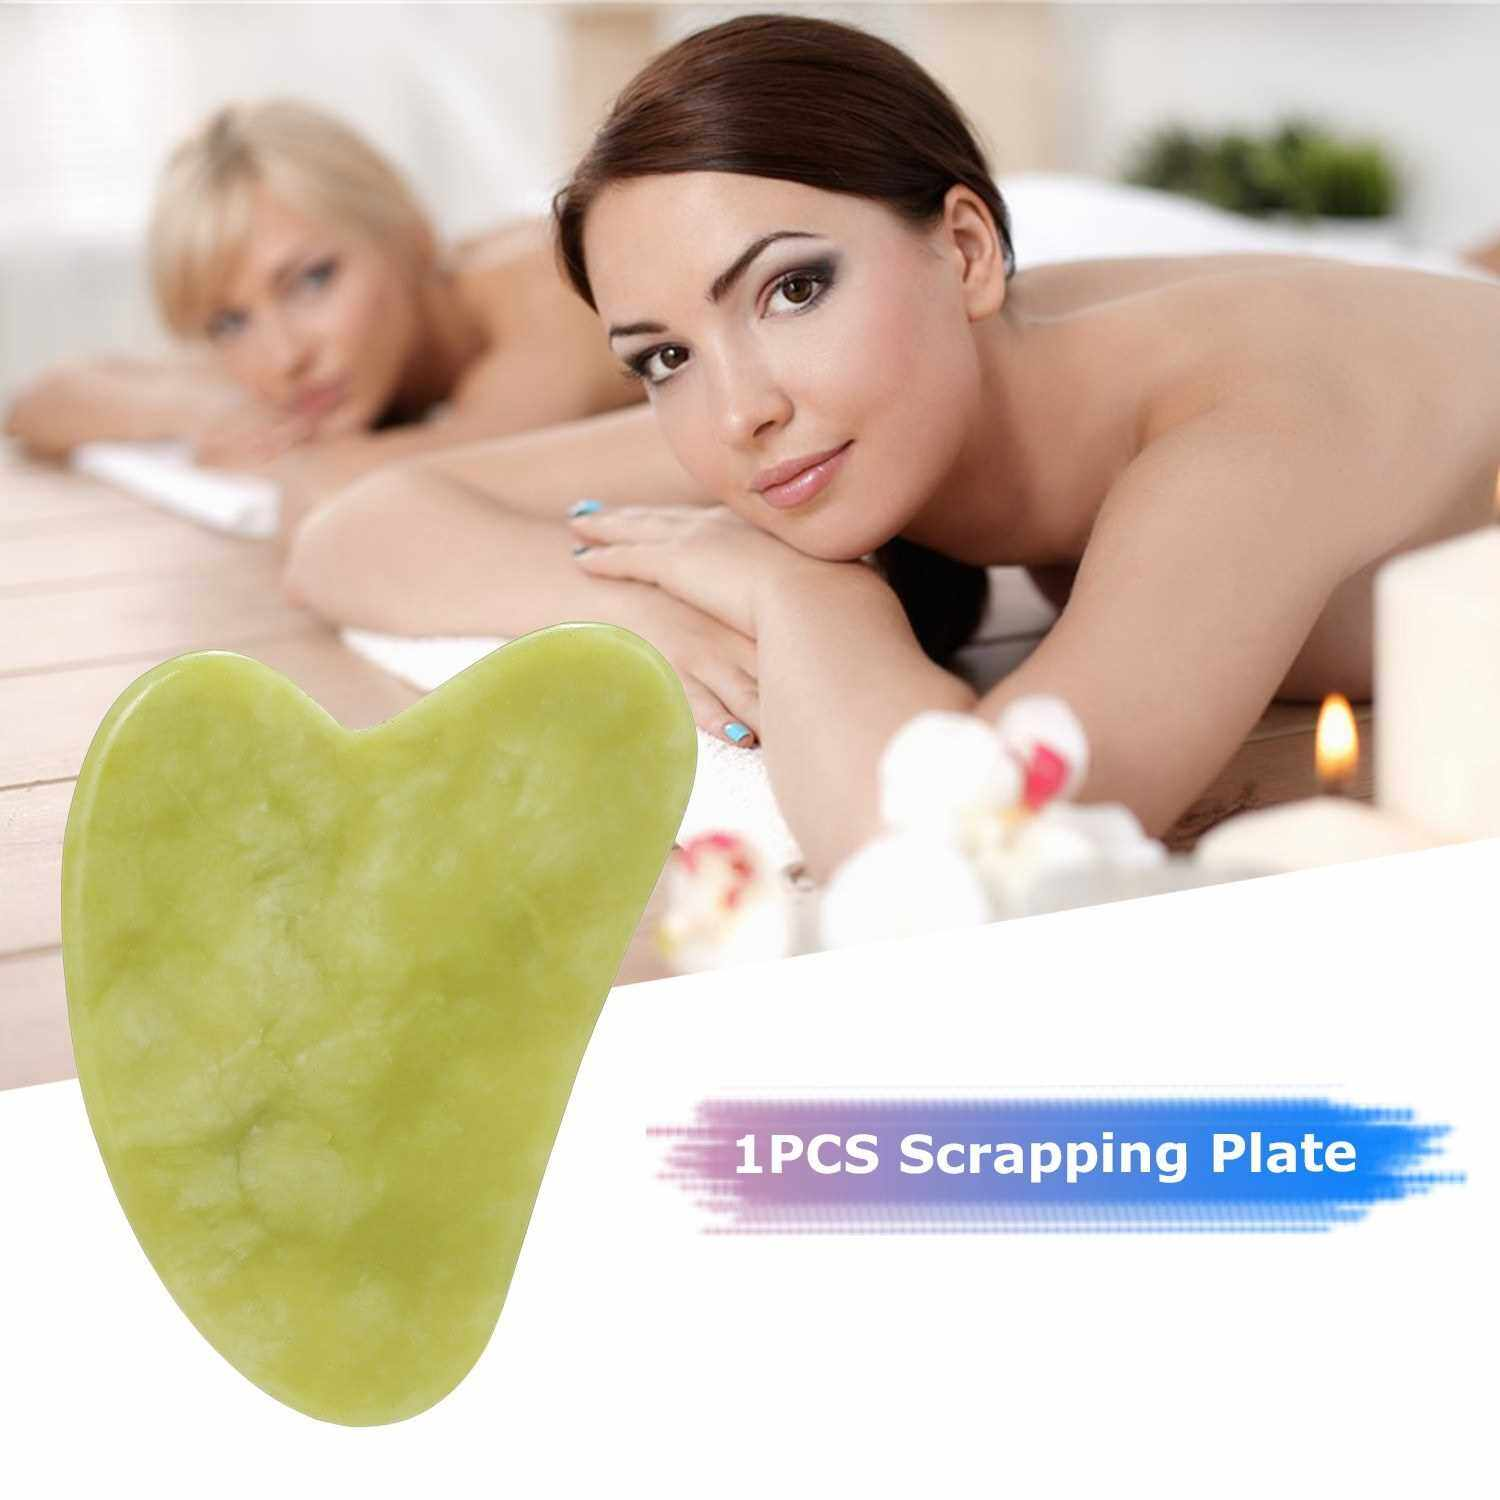 1PCS Scrapping Plate Massage Tool SPA Facial Care Face Lift Plate (Standard)